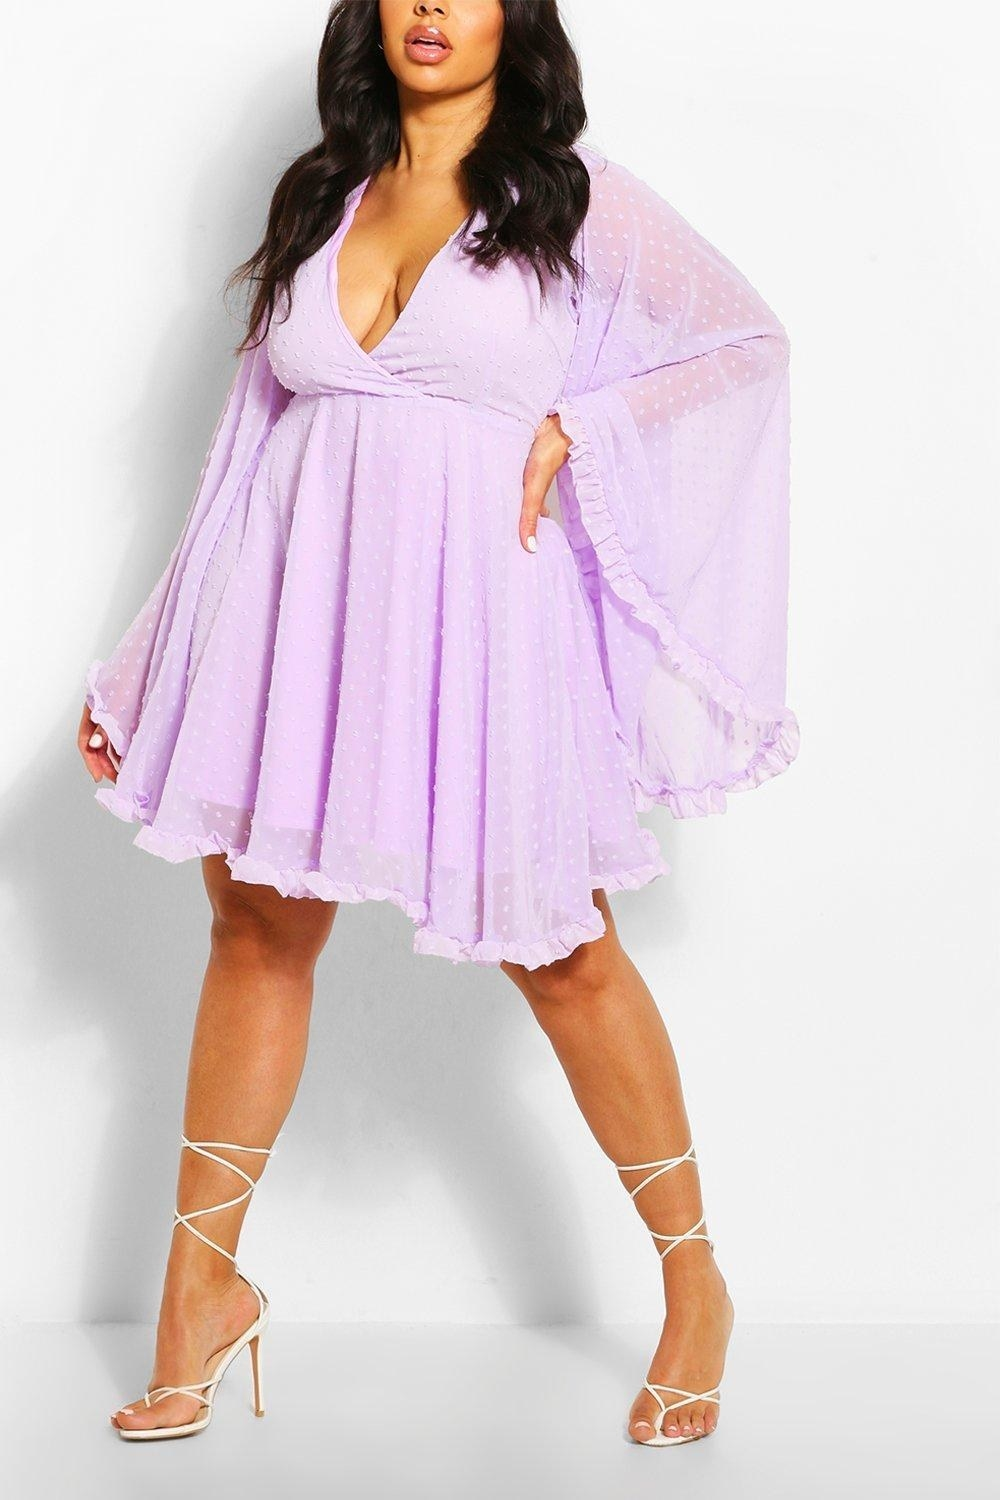 A model wearing the skater dress in lilac